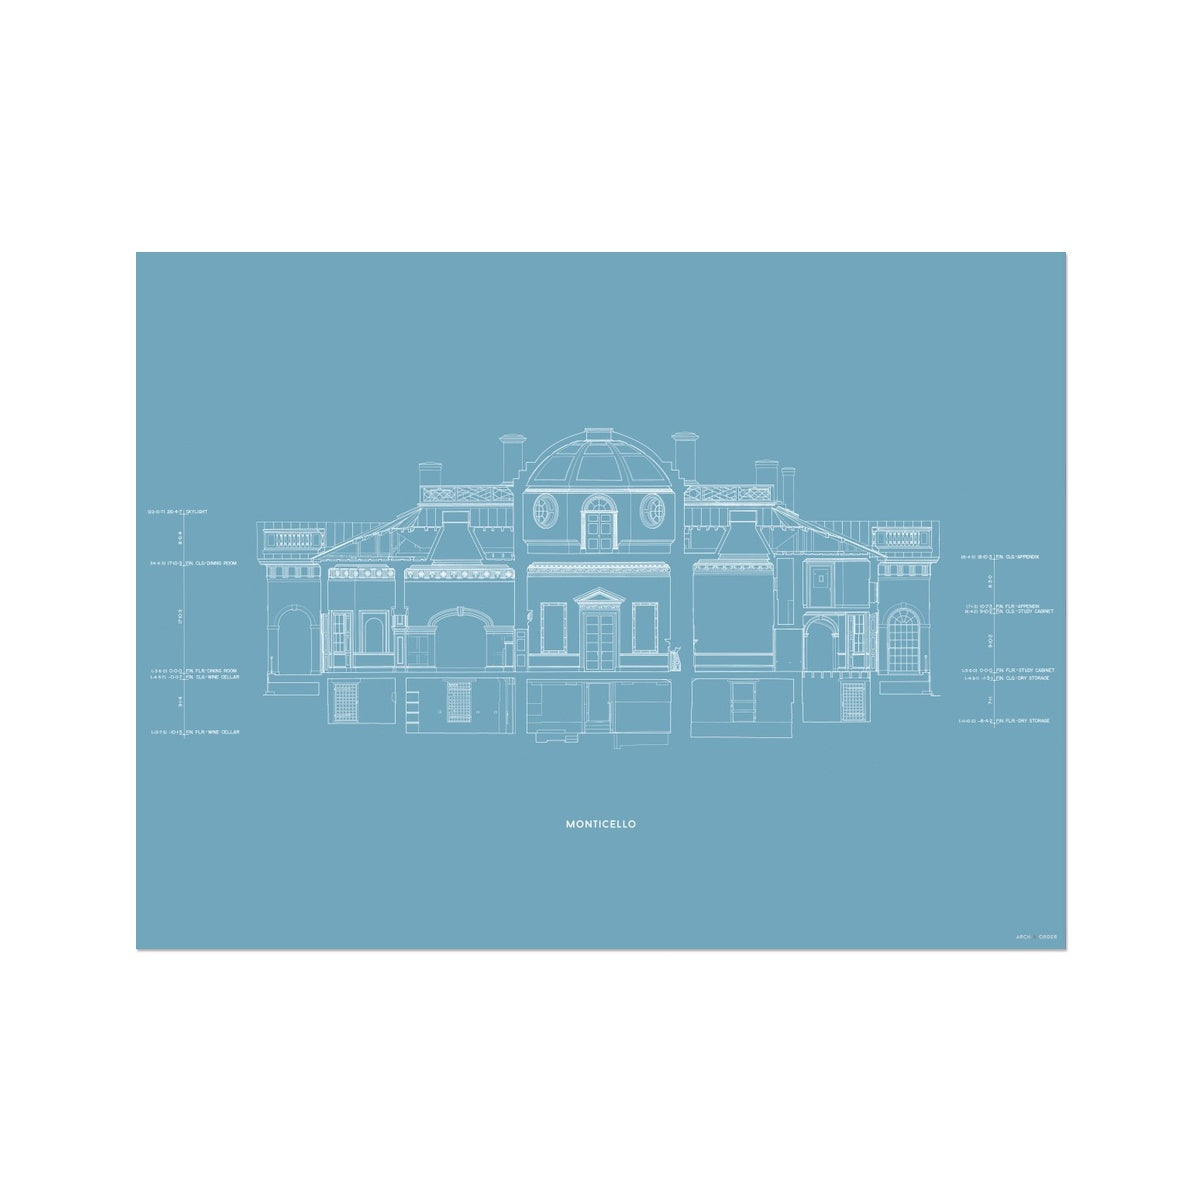 Monticello - West Elevation Cross Section - Blue -  Etching Paper Print